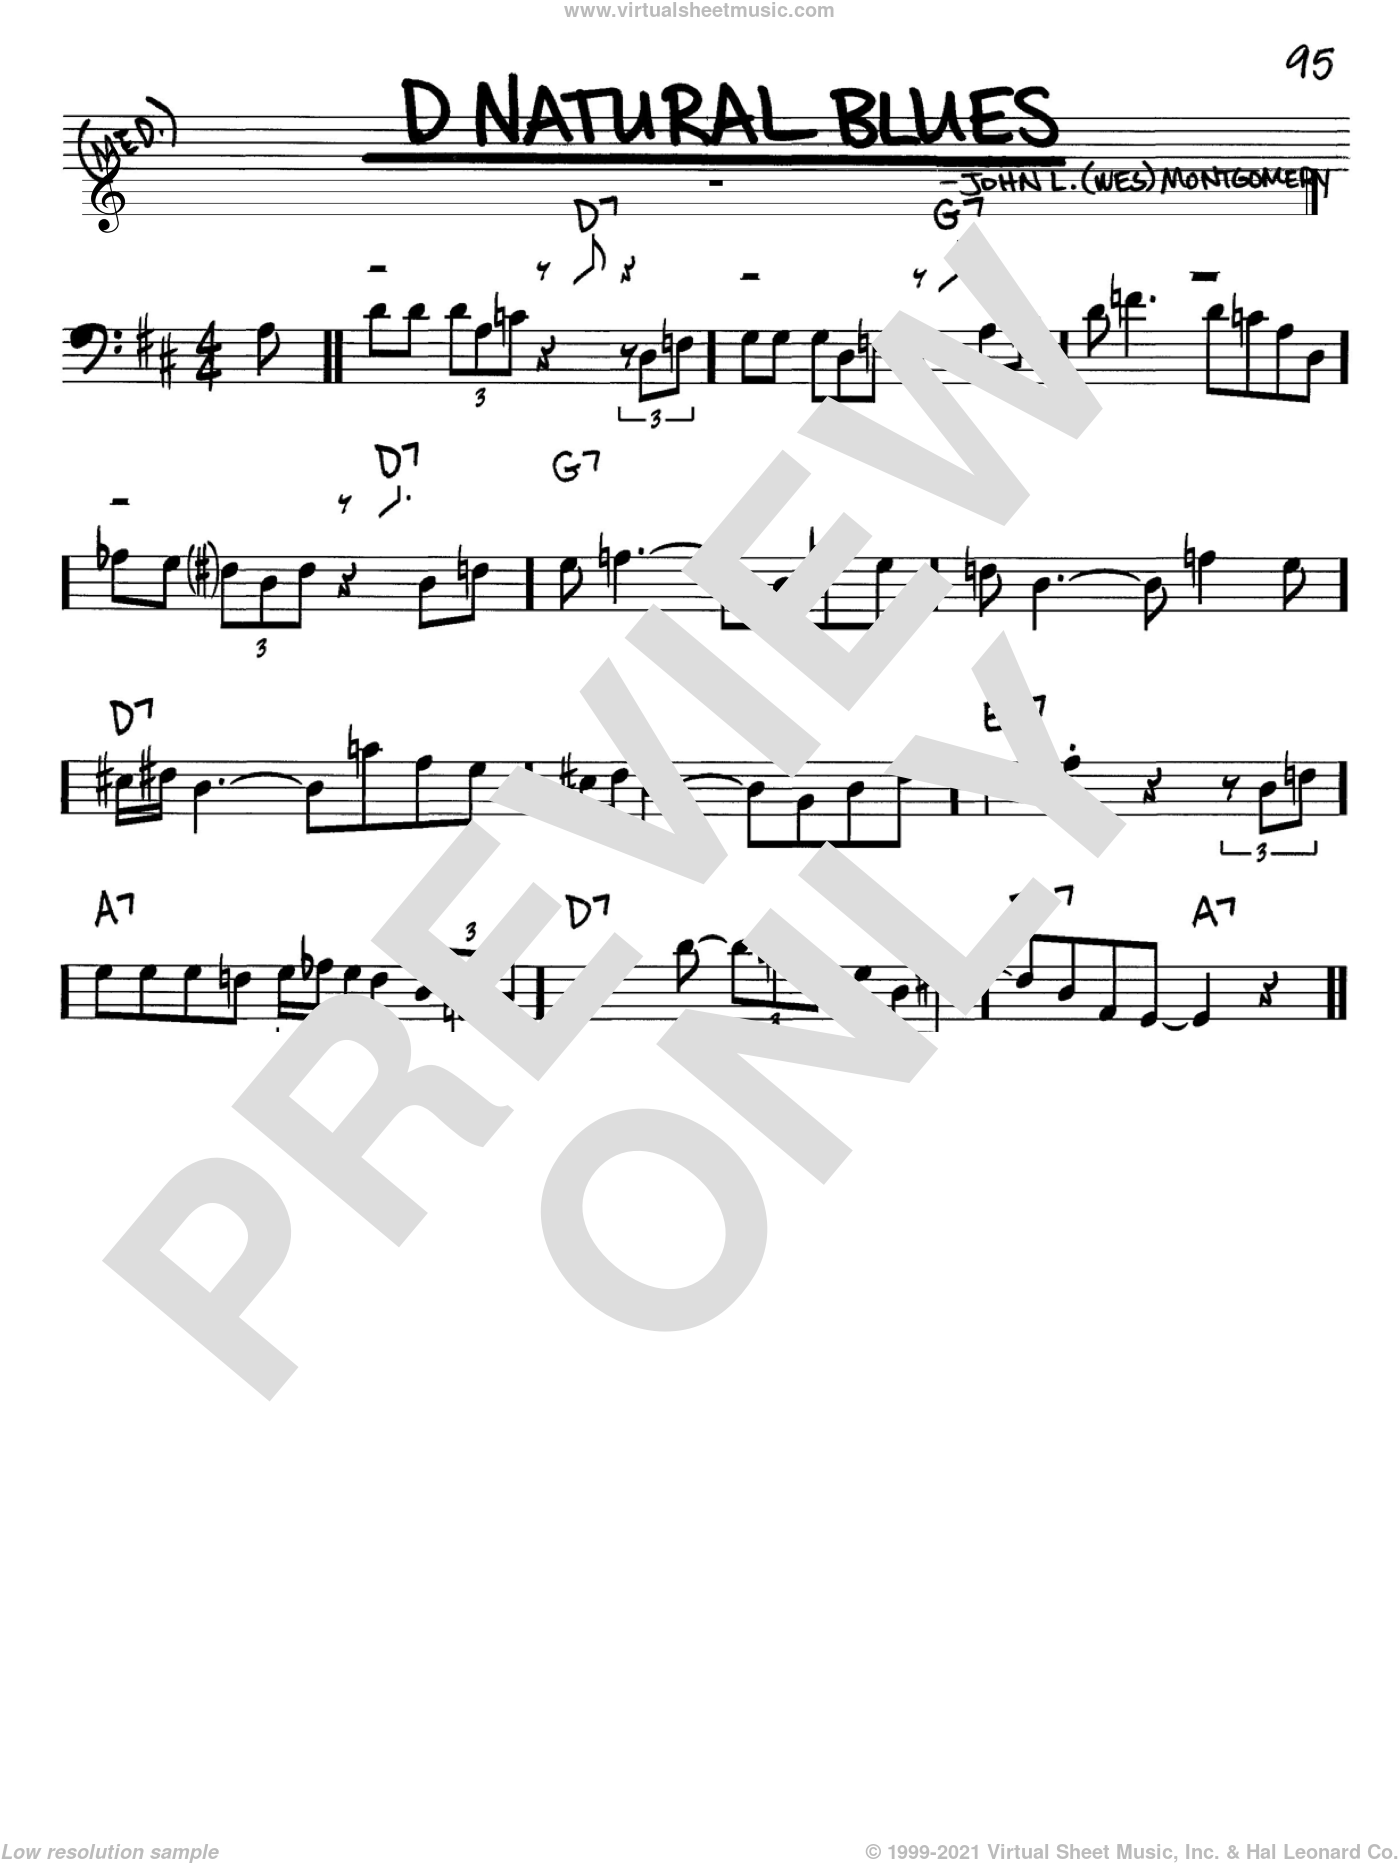 D Natural Blues sheet music for voice and other instruments (Bass Clef ) by Wes Montgomery. Score Image Preview.